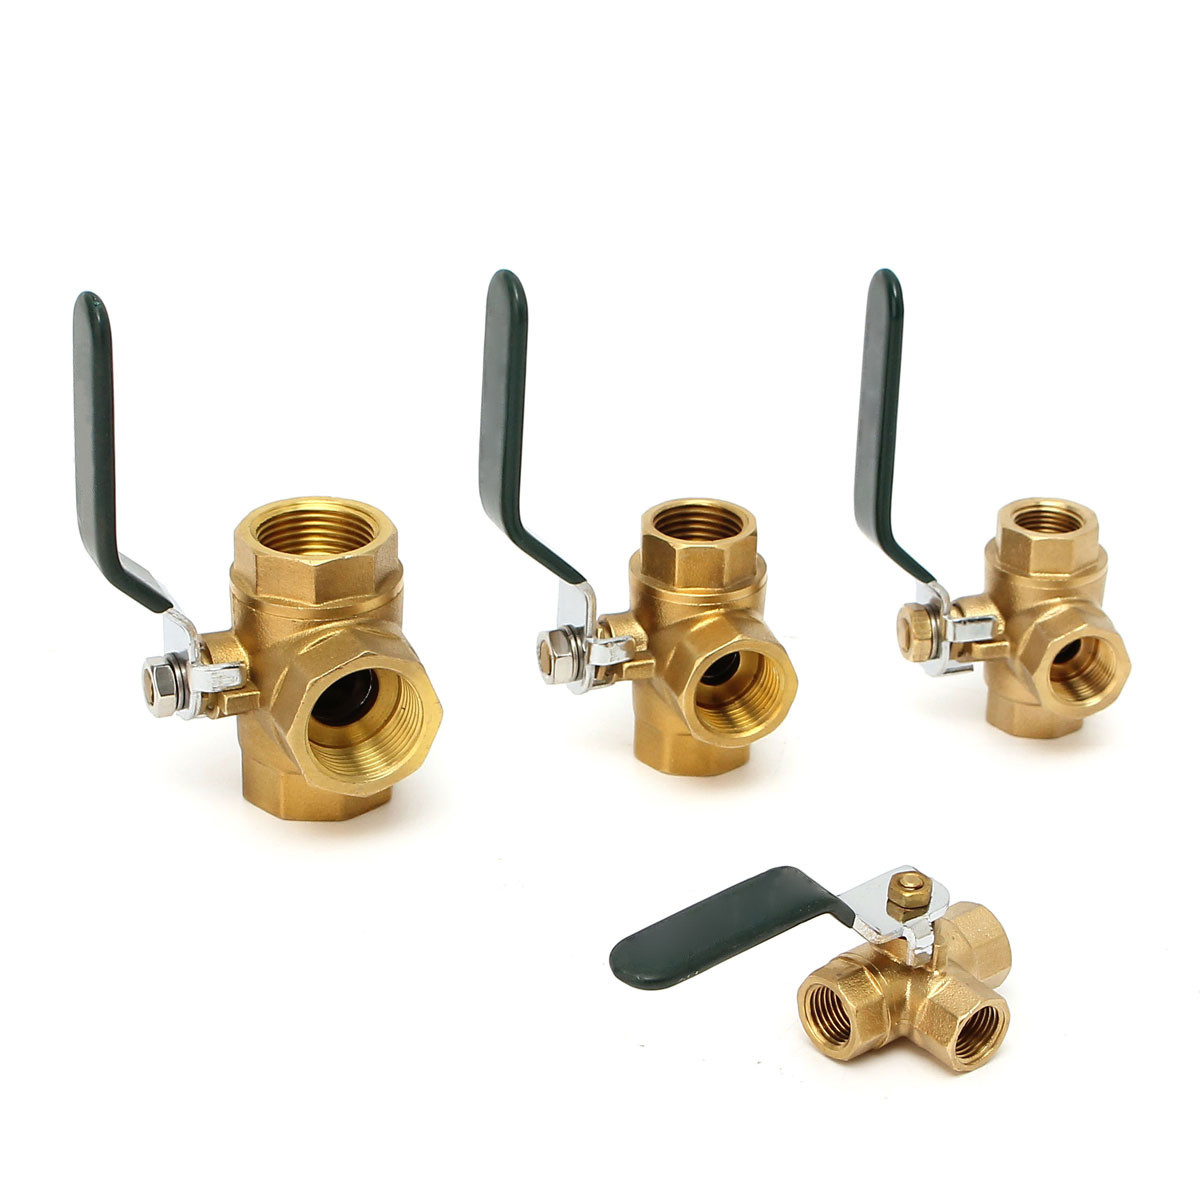 XNEMON 1/4 3/8 <font><b>1/2</b></font> 3/4Brass <font><b>Ball</b></font> <font><b>Valve</b></font> Fixed 3 Way Full LType Port Filter Adapter Handle Thread Connector Faucet Value Water image